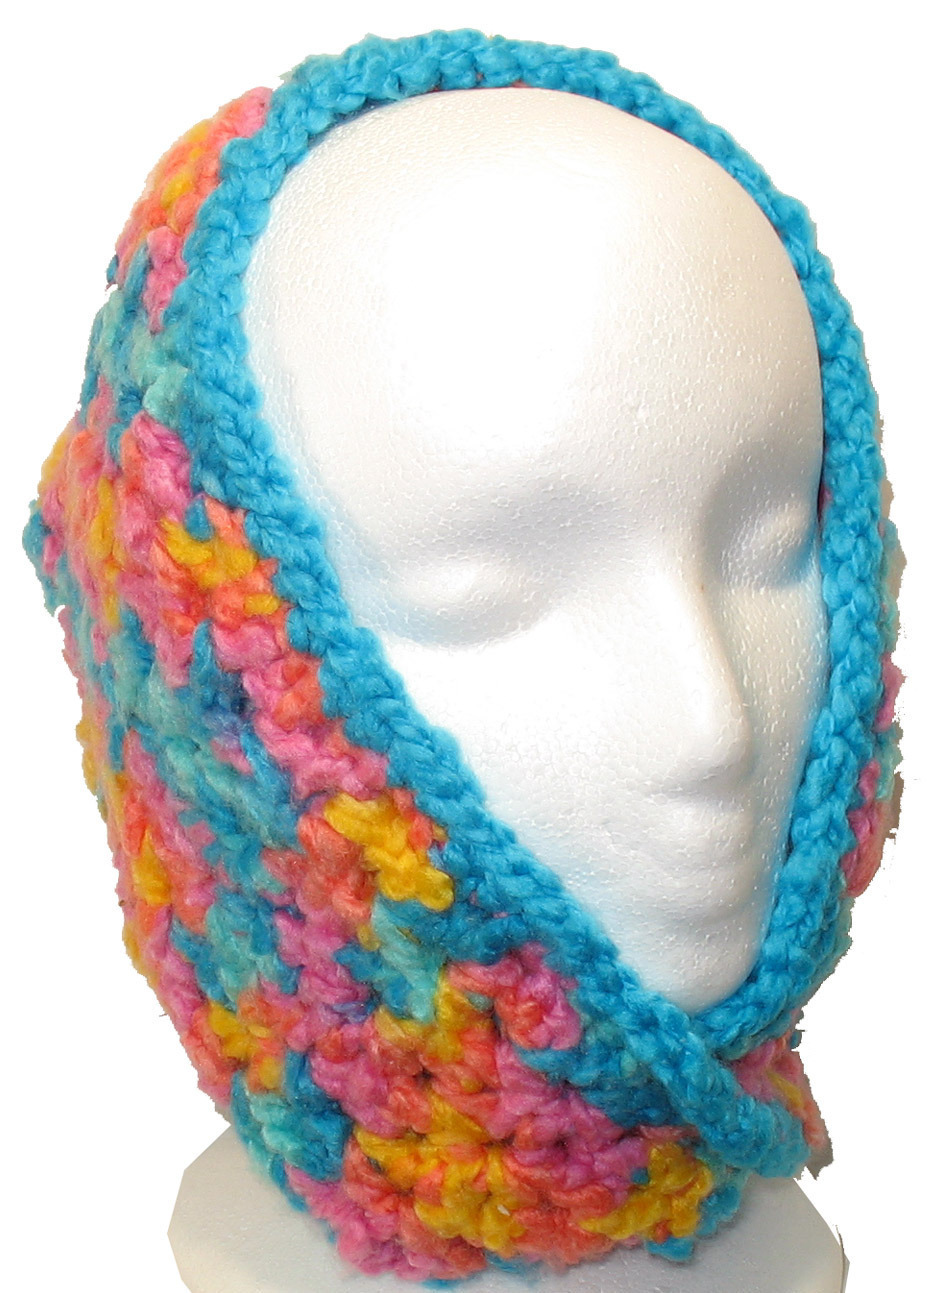 Bright-colored crocheted neck/head warmer image 2